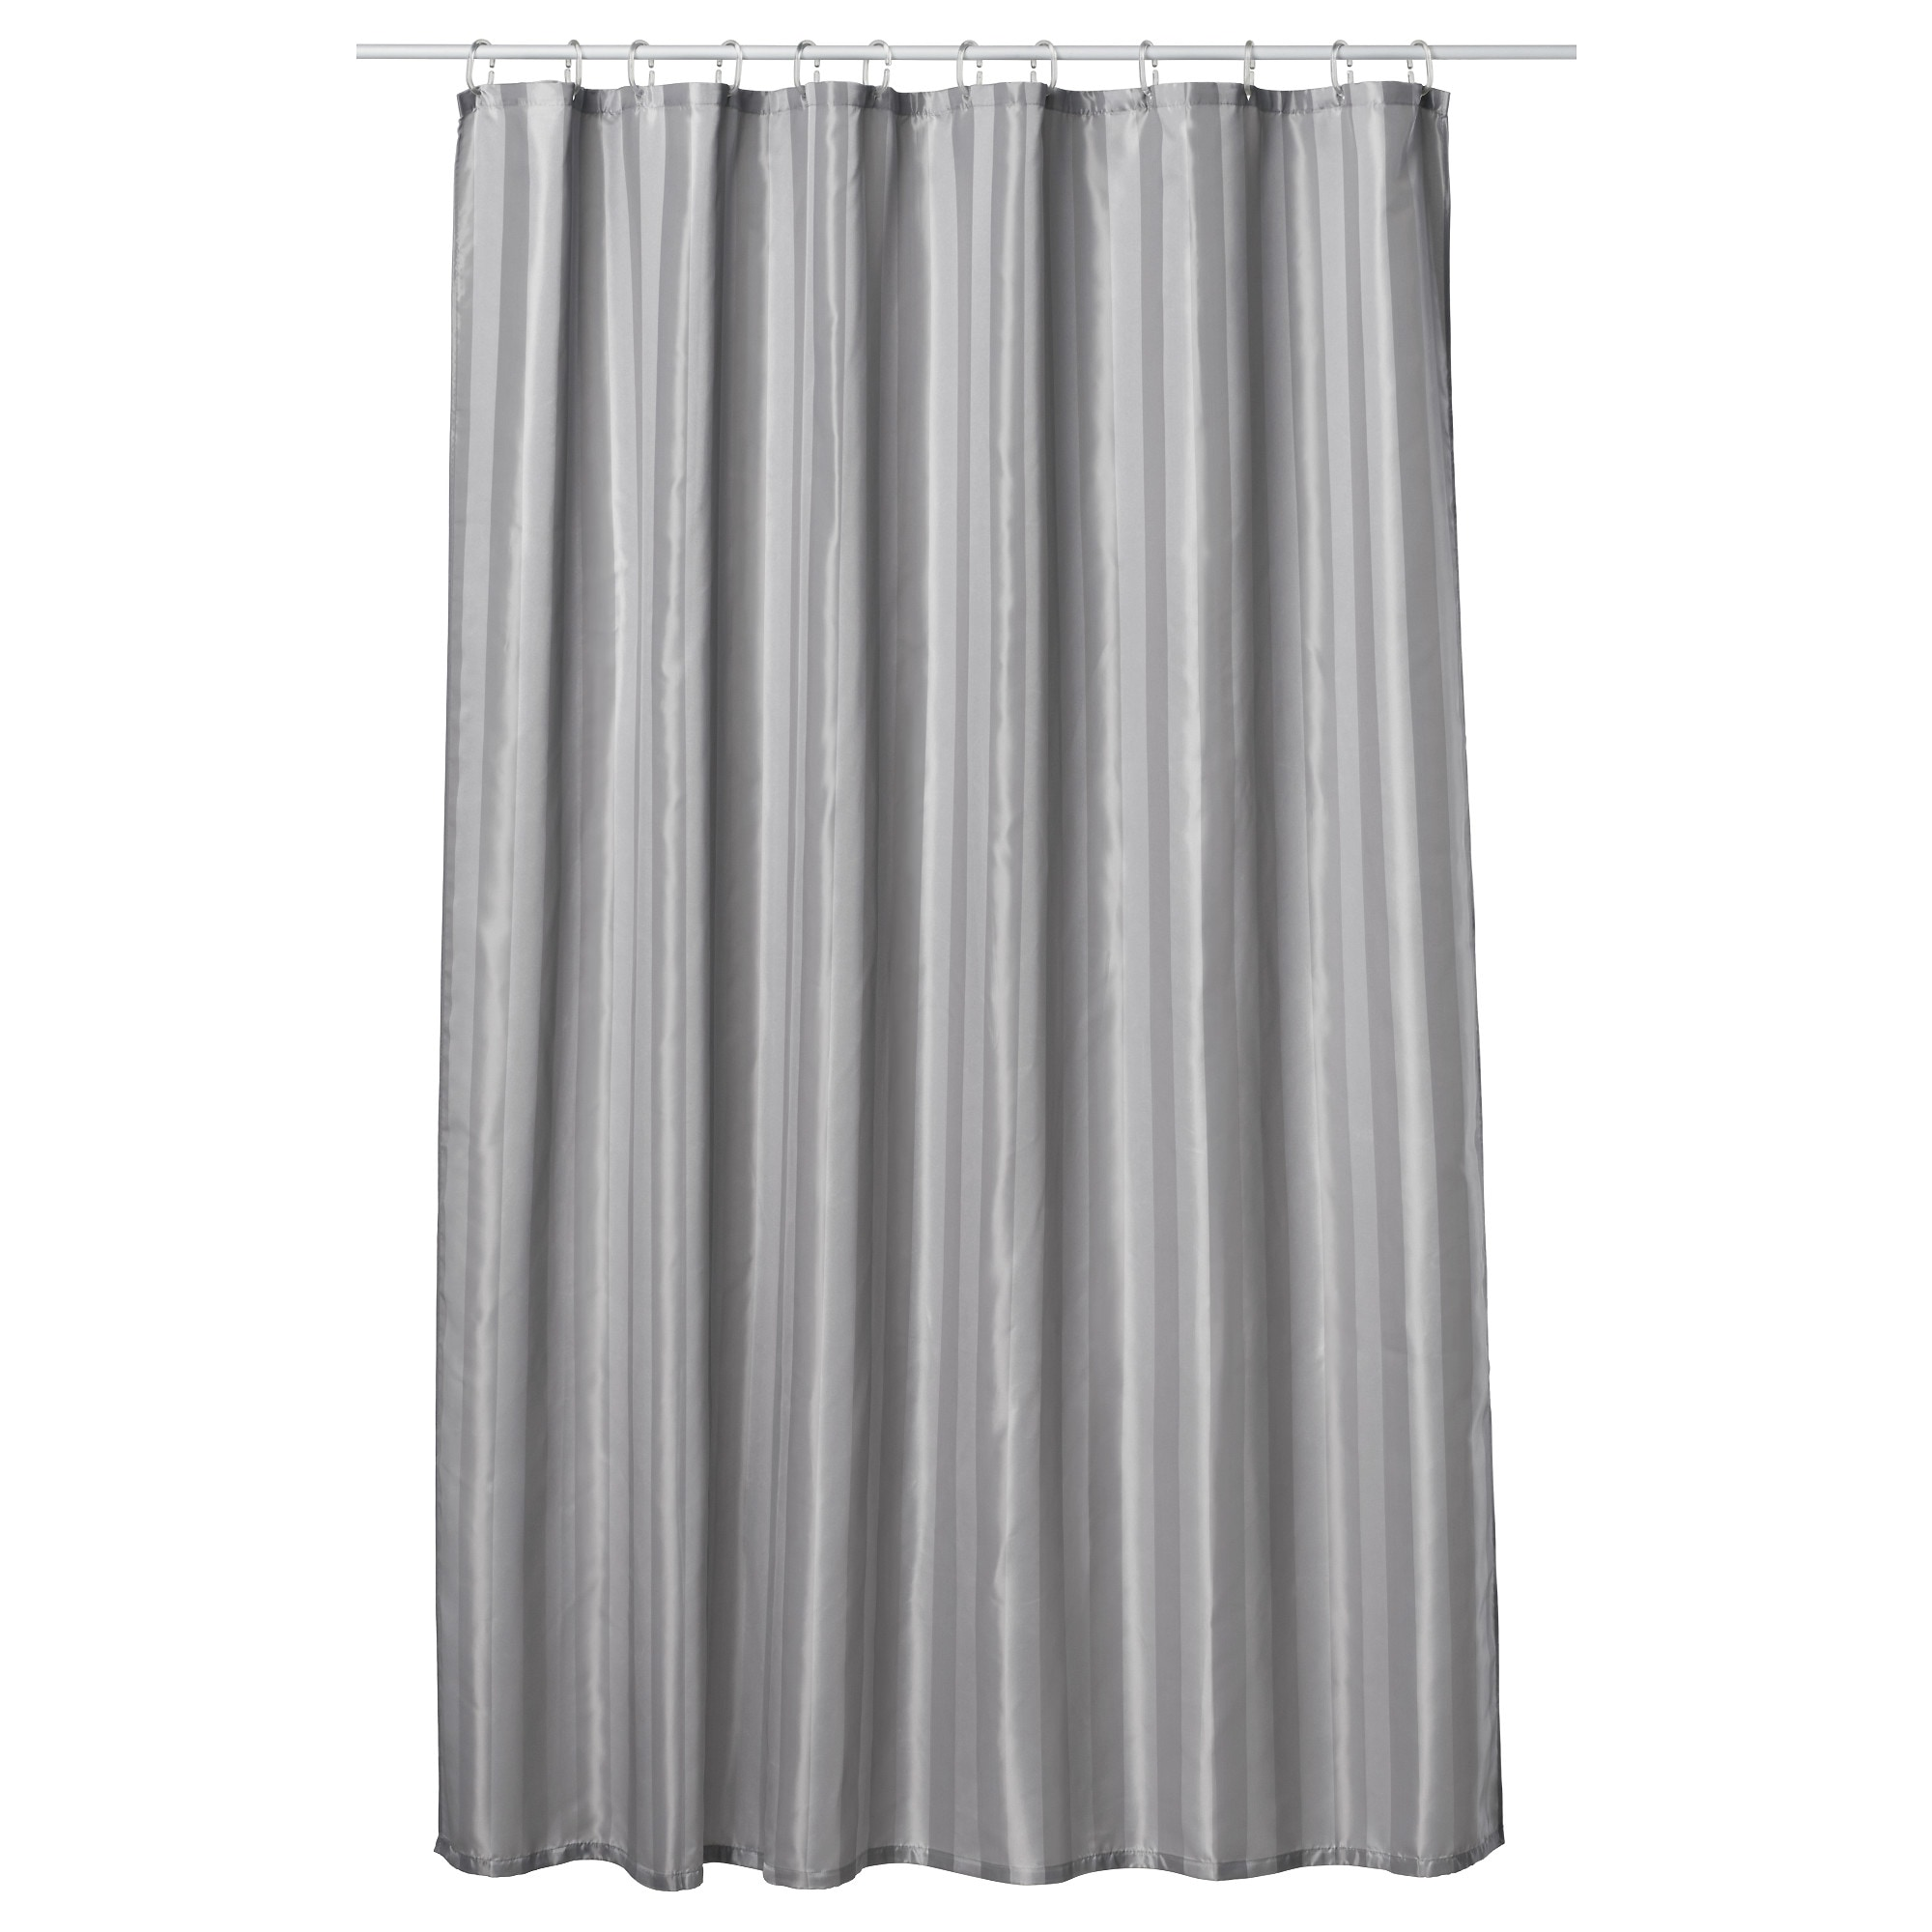 cubic stuff curtain plus splash eva kitchen clear shower